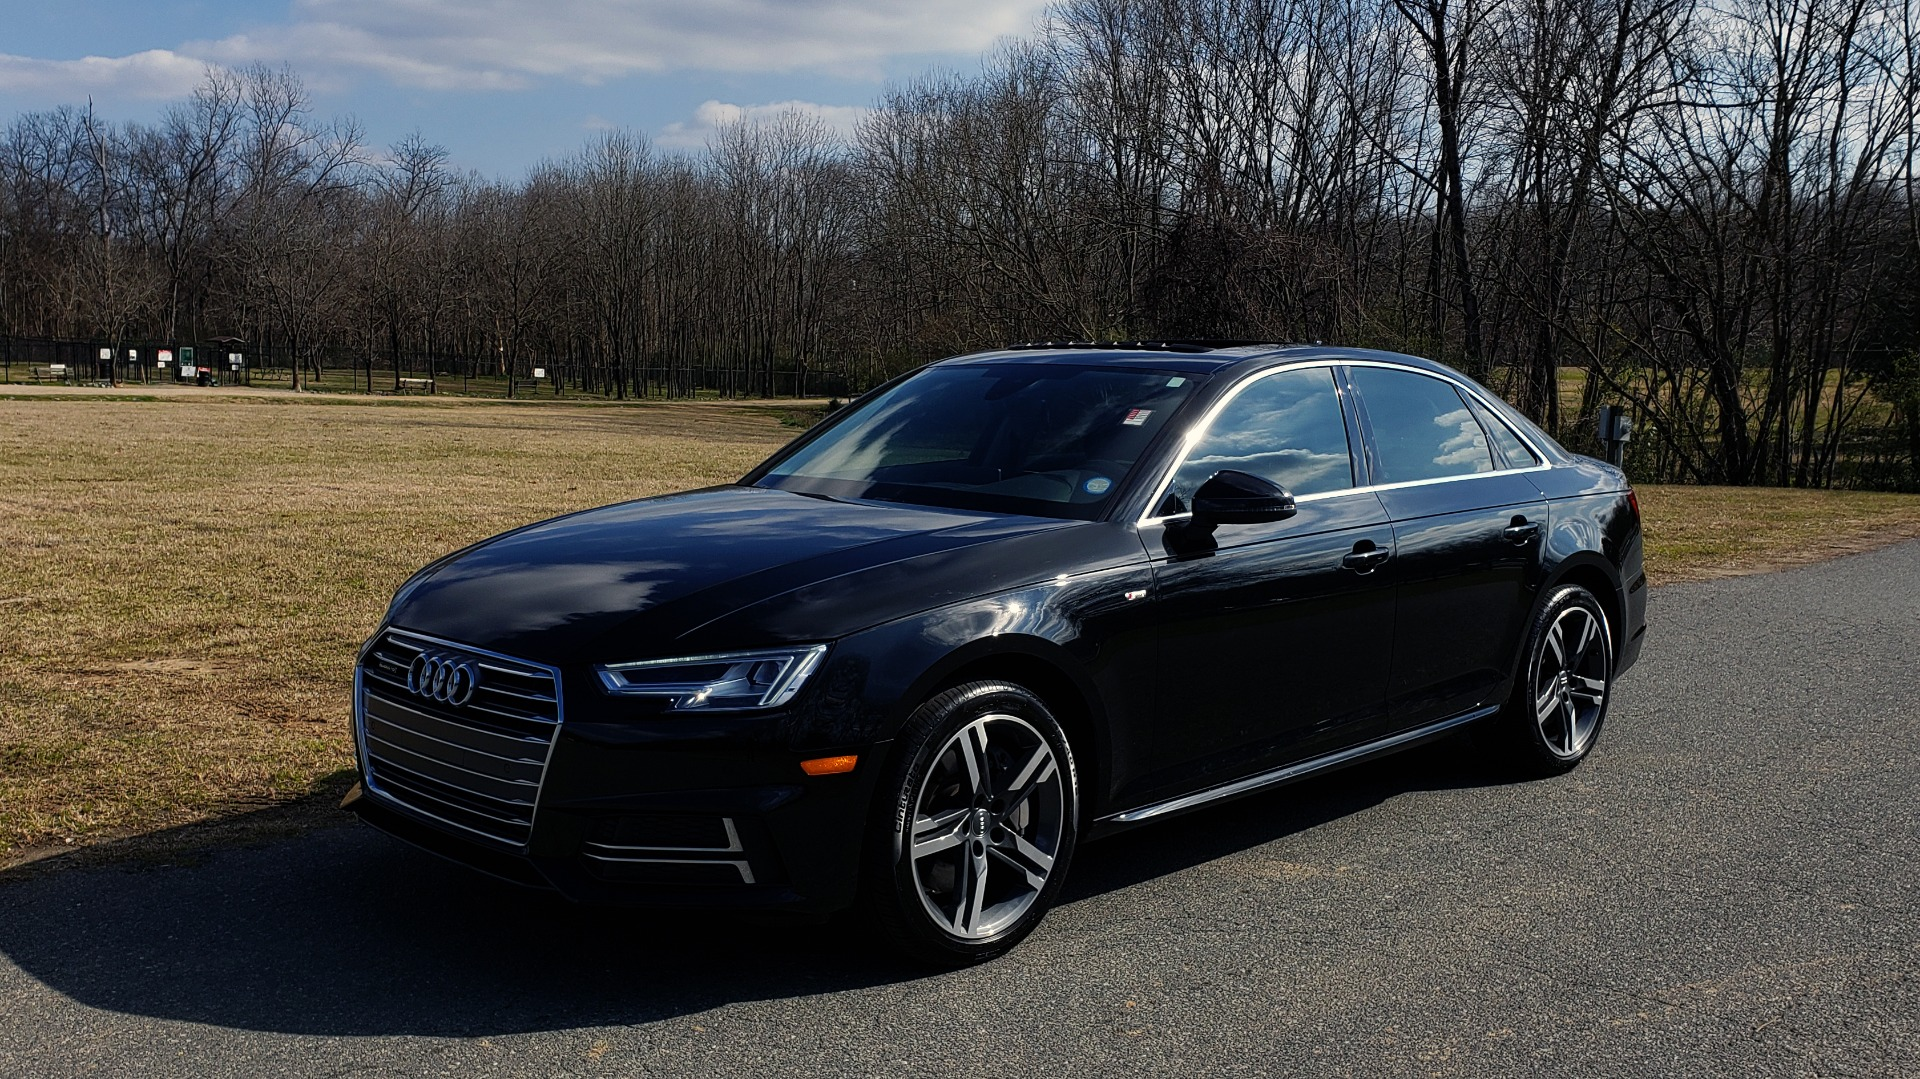 Used 2017 Audi A4 PREMIUM PLUS 2.0T / TECH / NAV / CLD WTHR / SUNROOF / REARVIEW for sale Sold at Formula Imports in Charlotte NC 28227 1